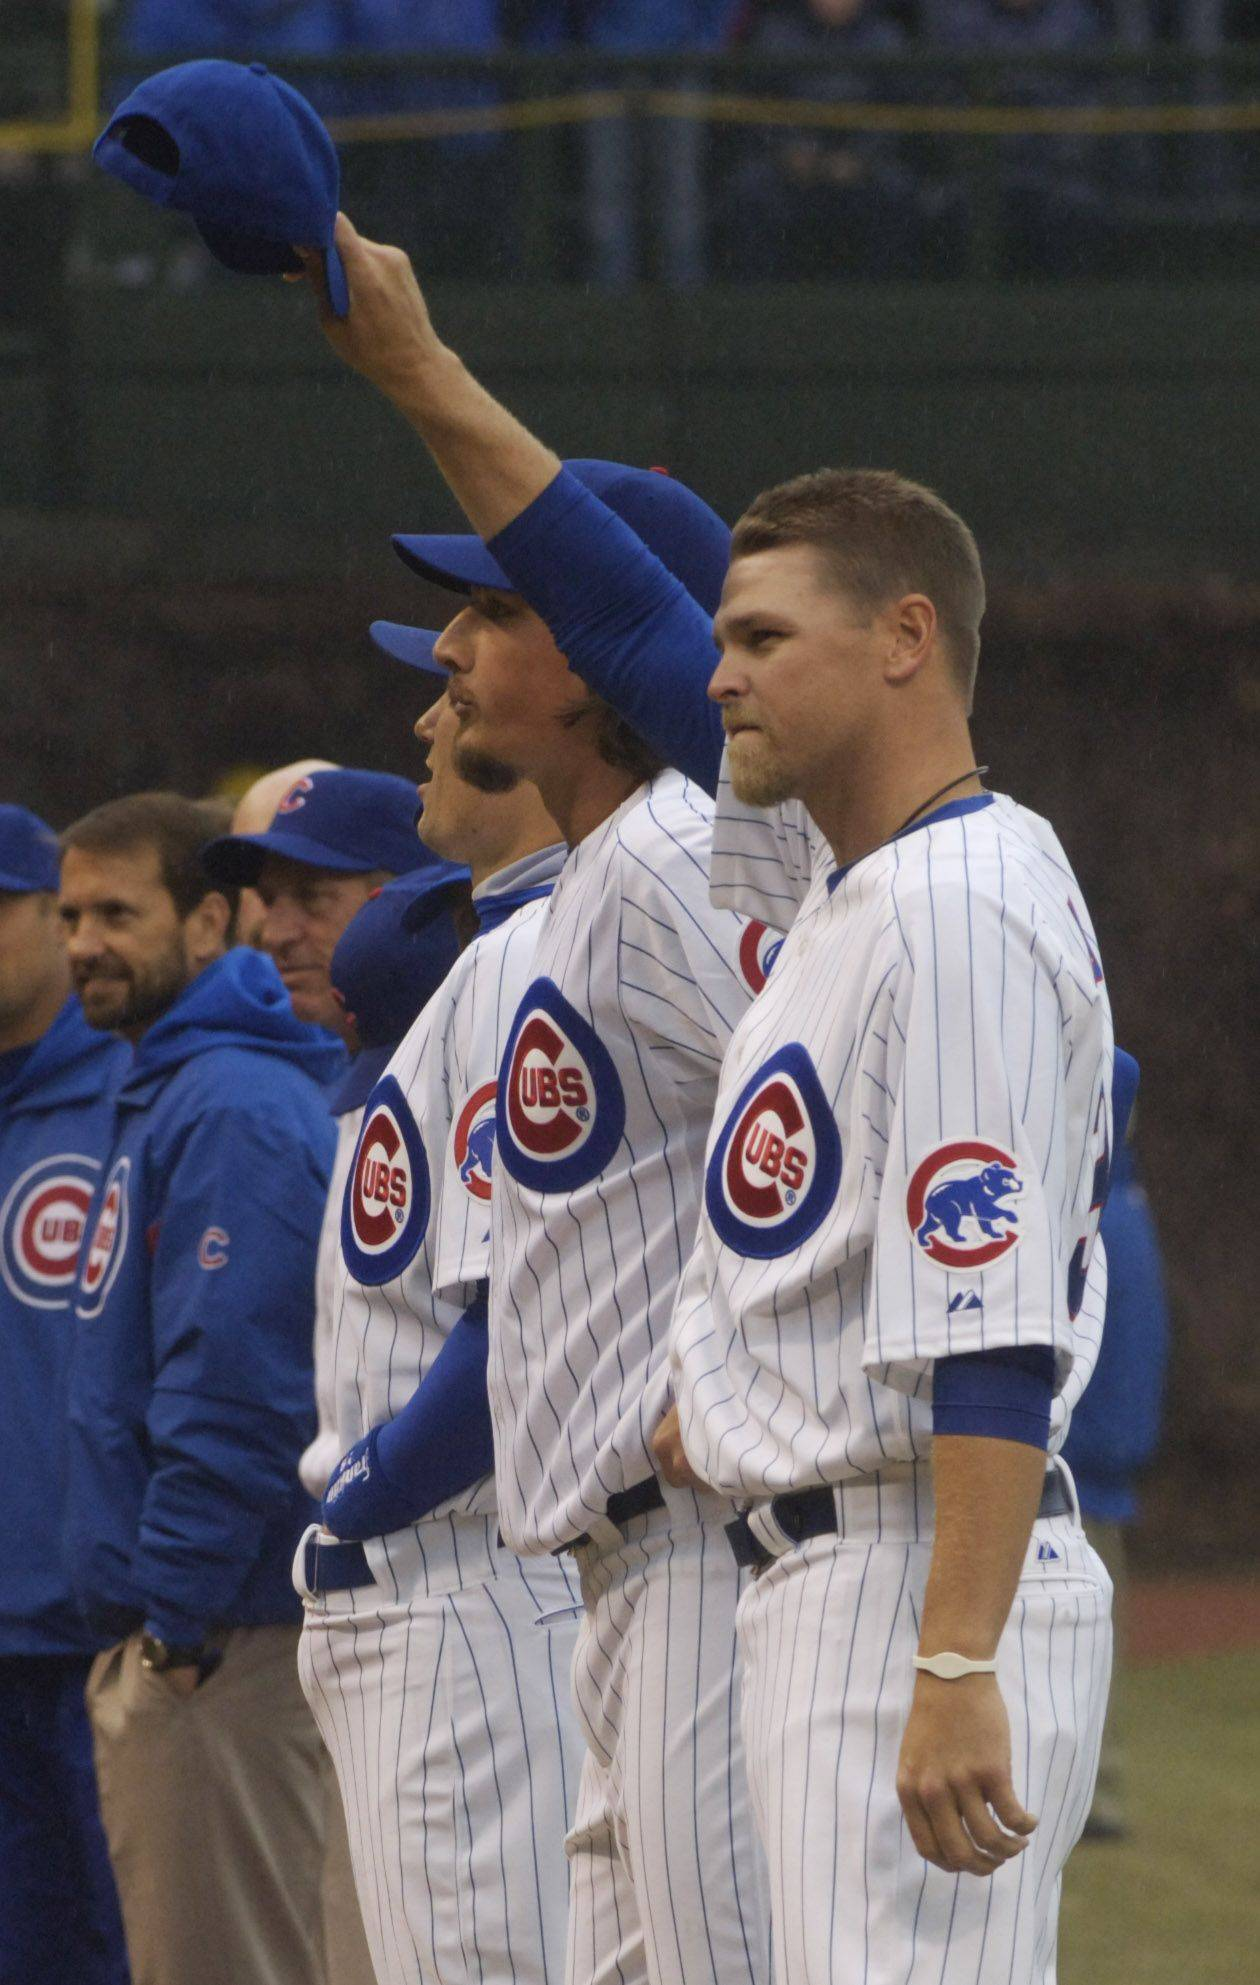 Cubs pitcher Kerry Wood acknowledges the fans.